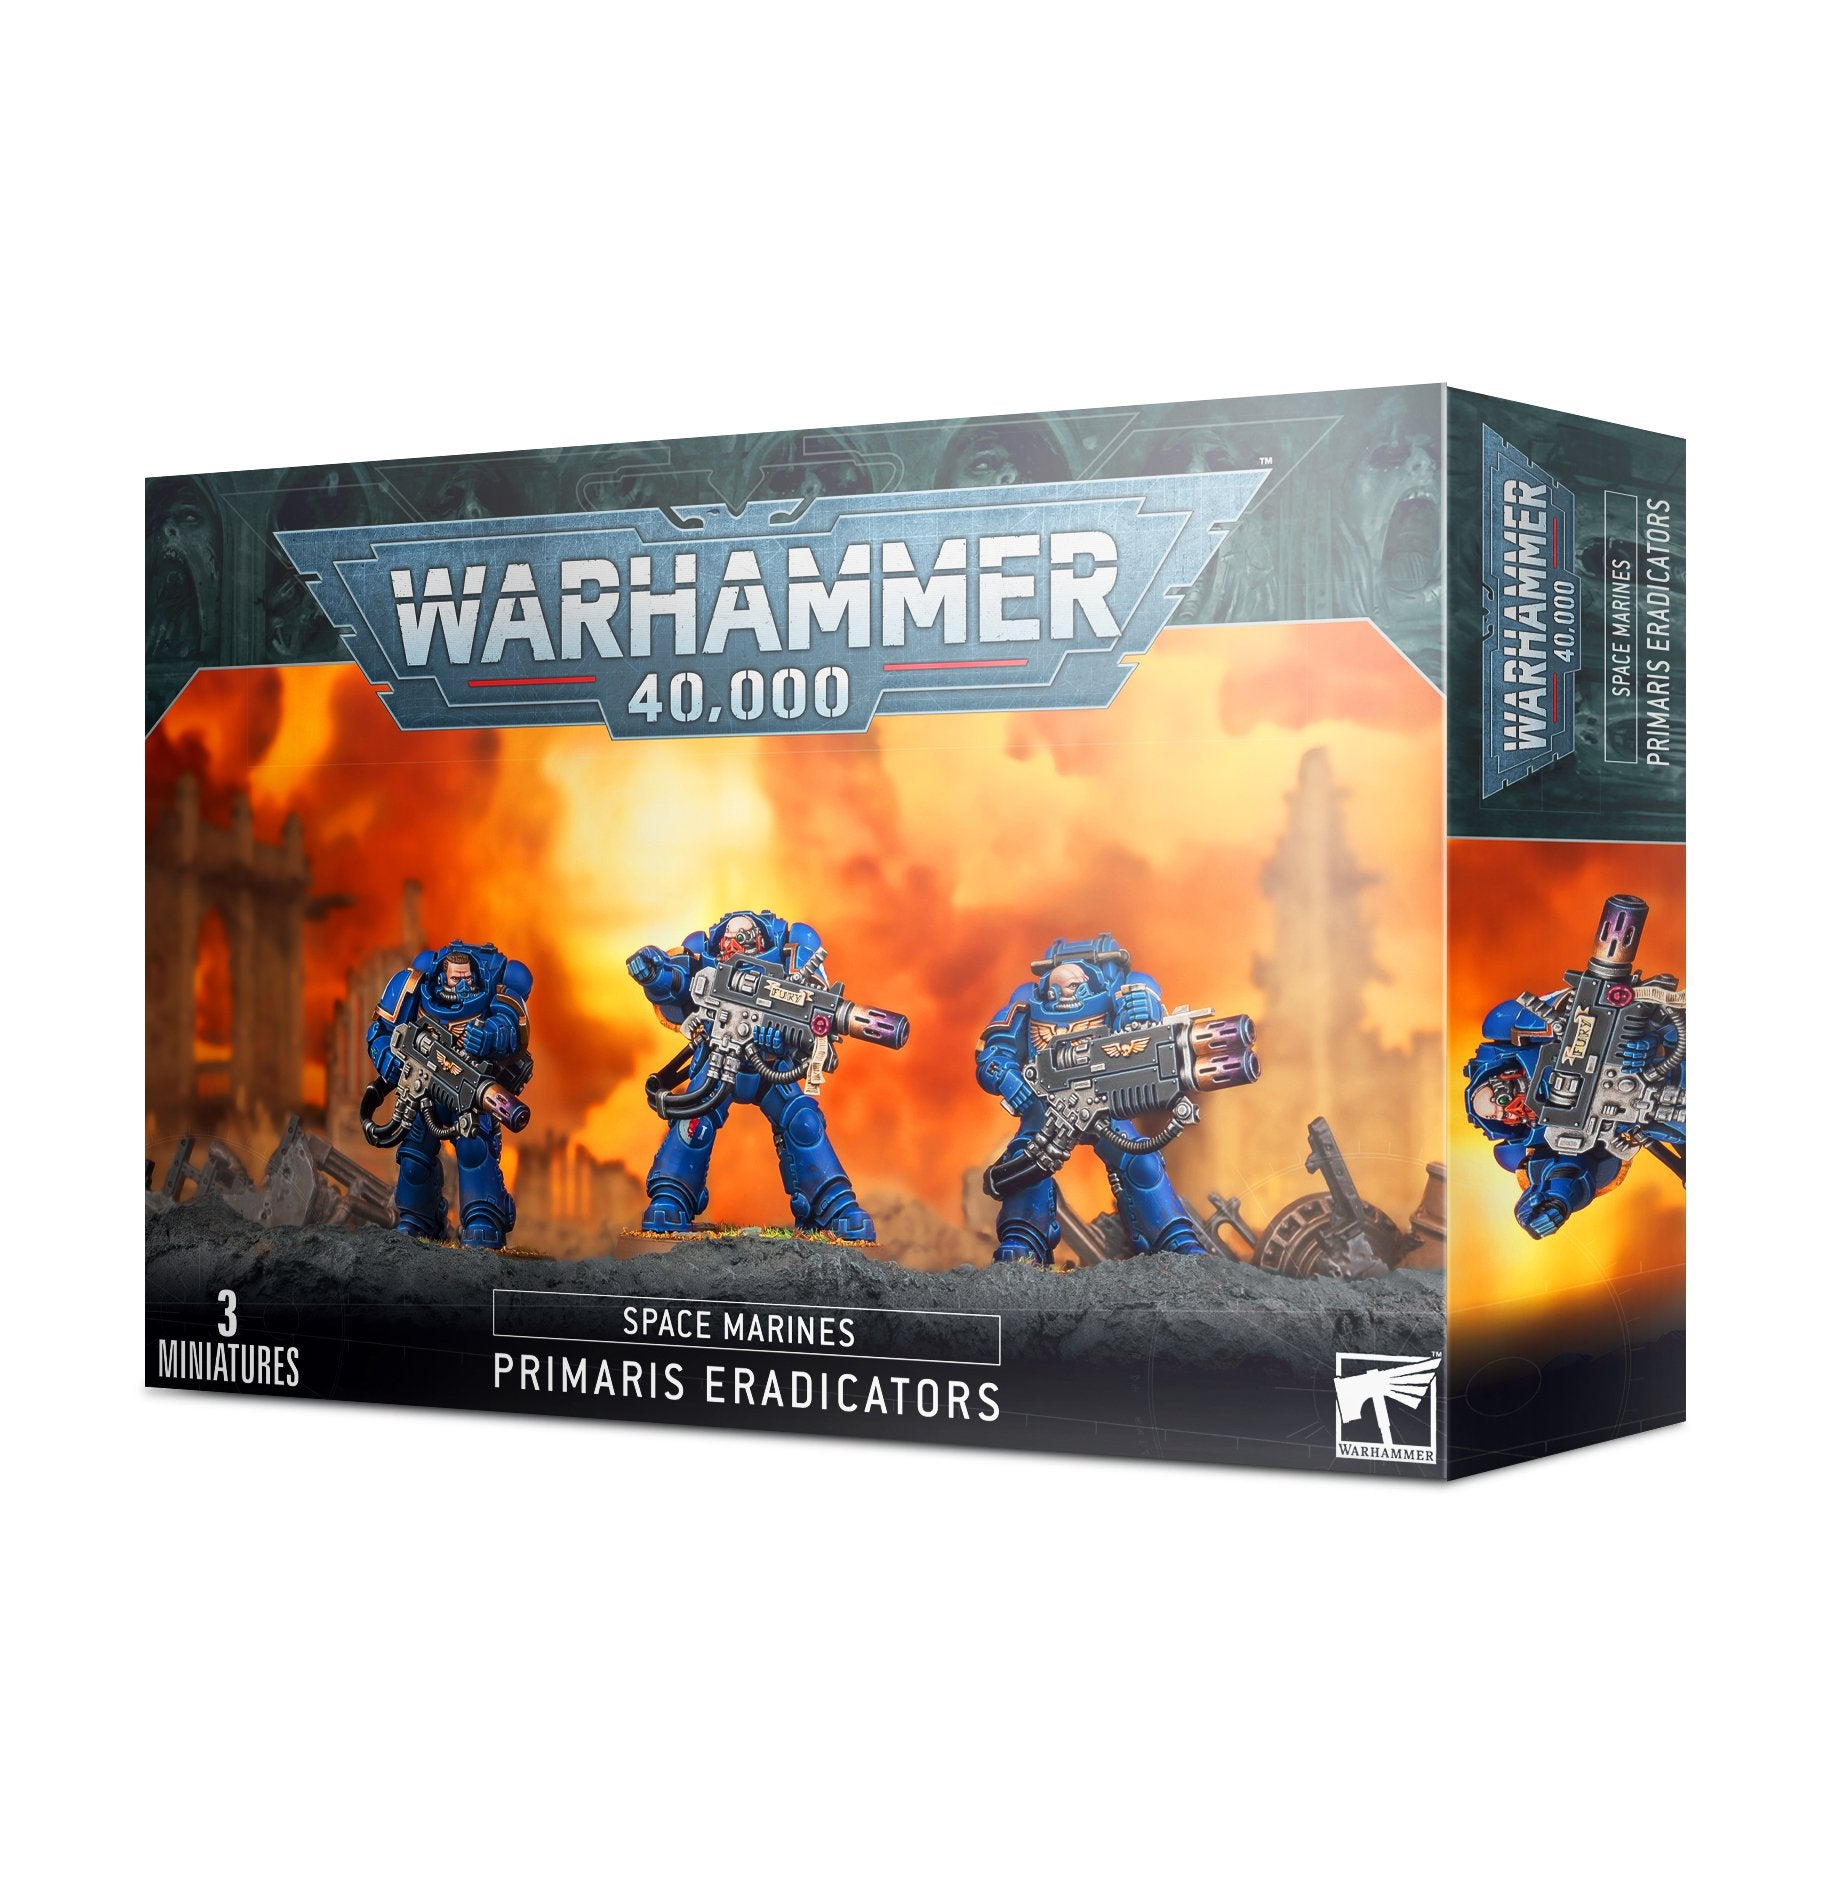 Warhammer 40,000: Space Marines - Primaris Eradicators | A&H Games - Monroe